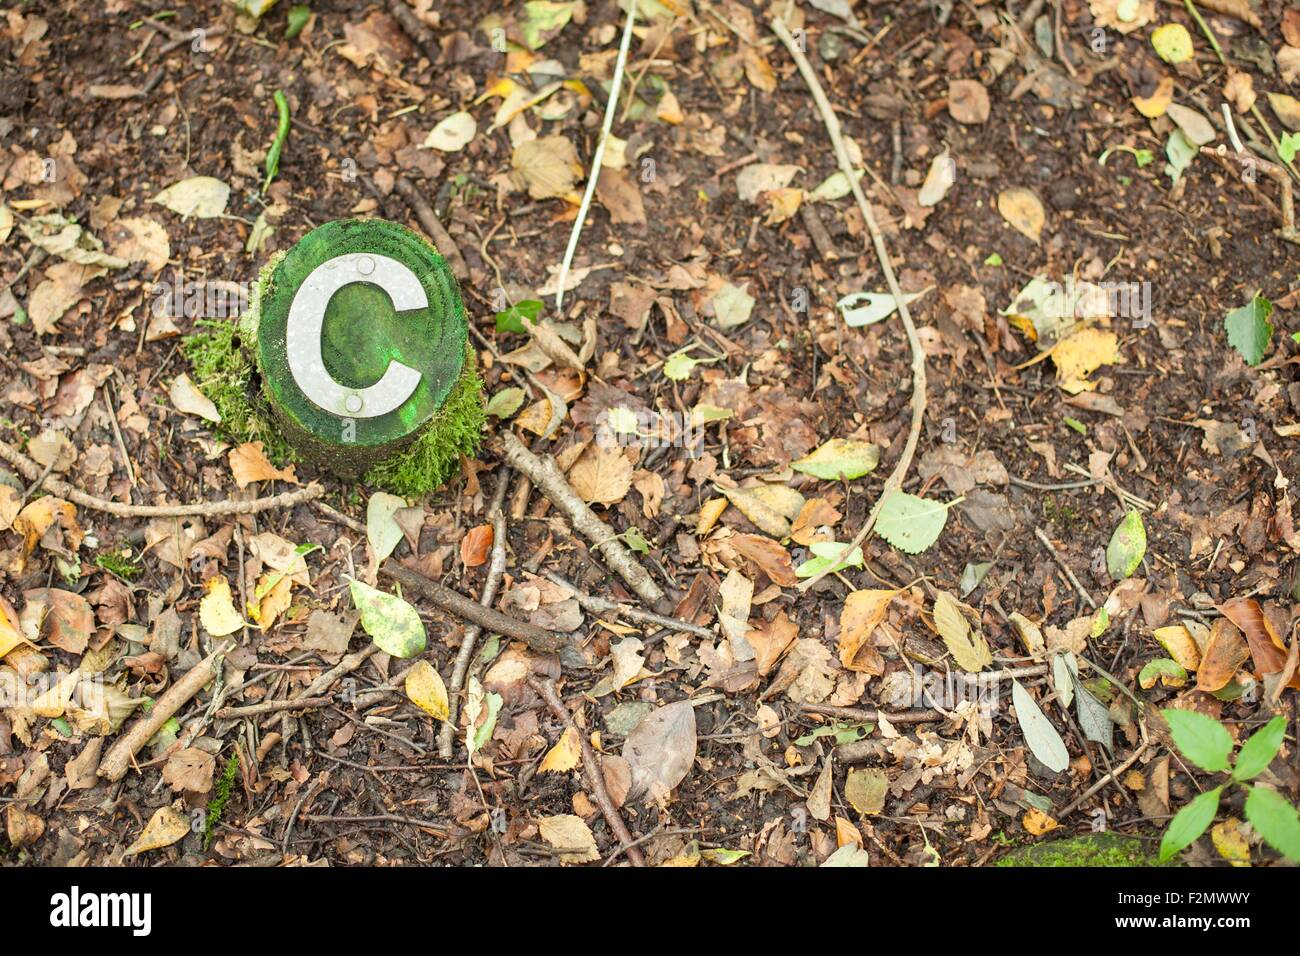 The letter C on a stump in the forest - Stock Image